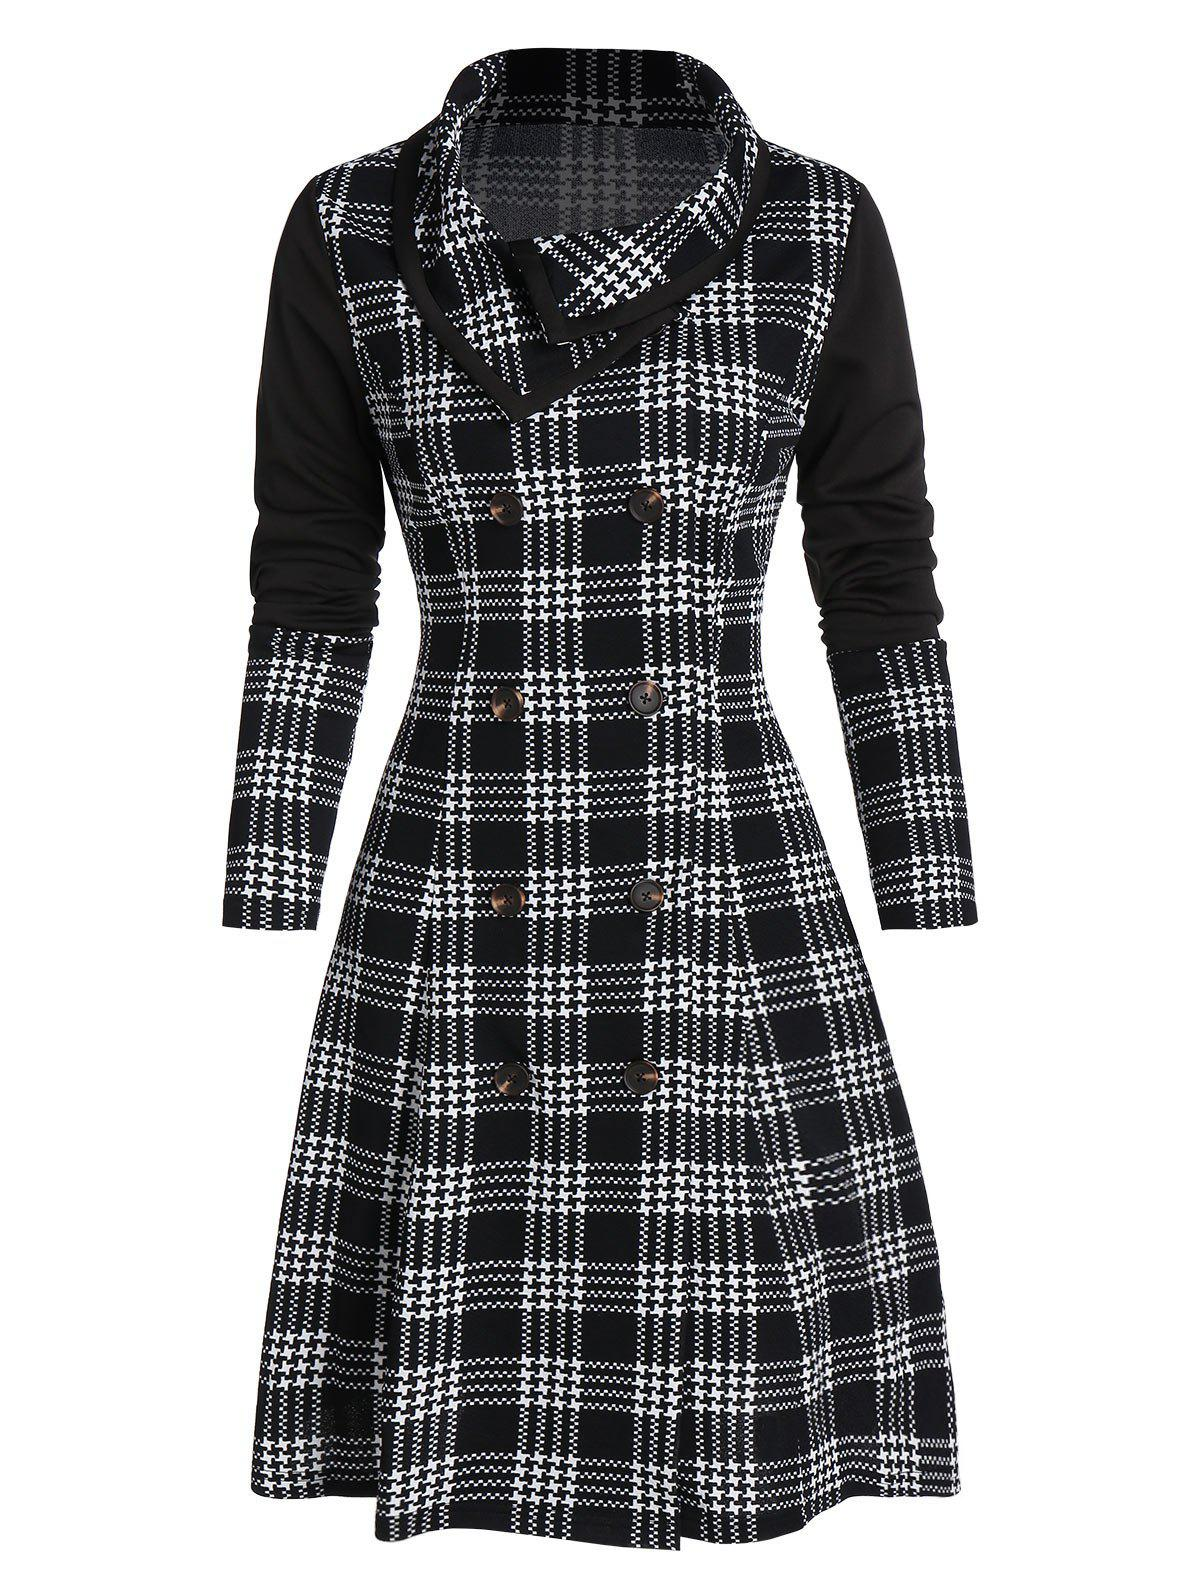 Houndstooth Plaid Print Double Breasted Skirted Coat - BLACK L